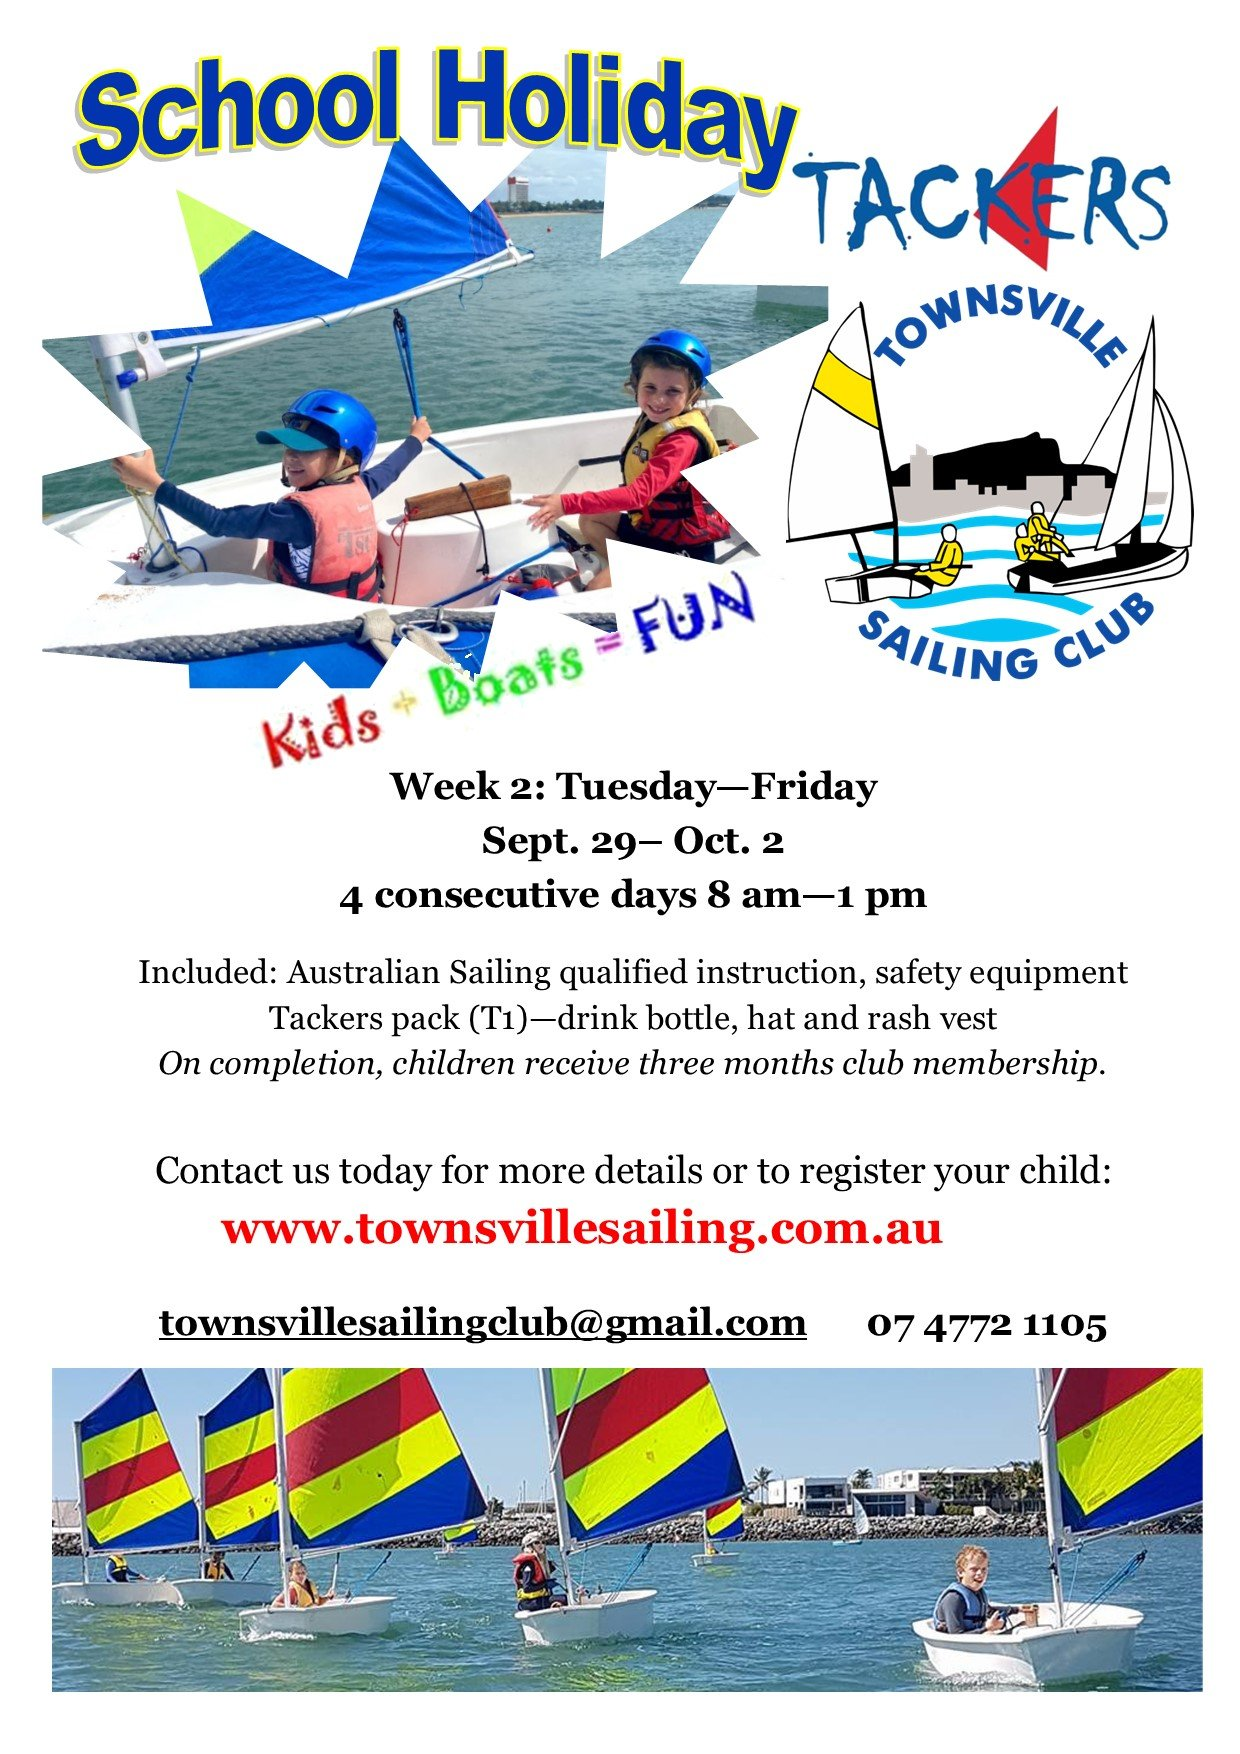 things to do with kids in townsville